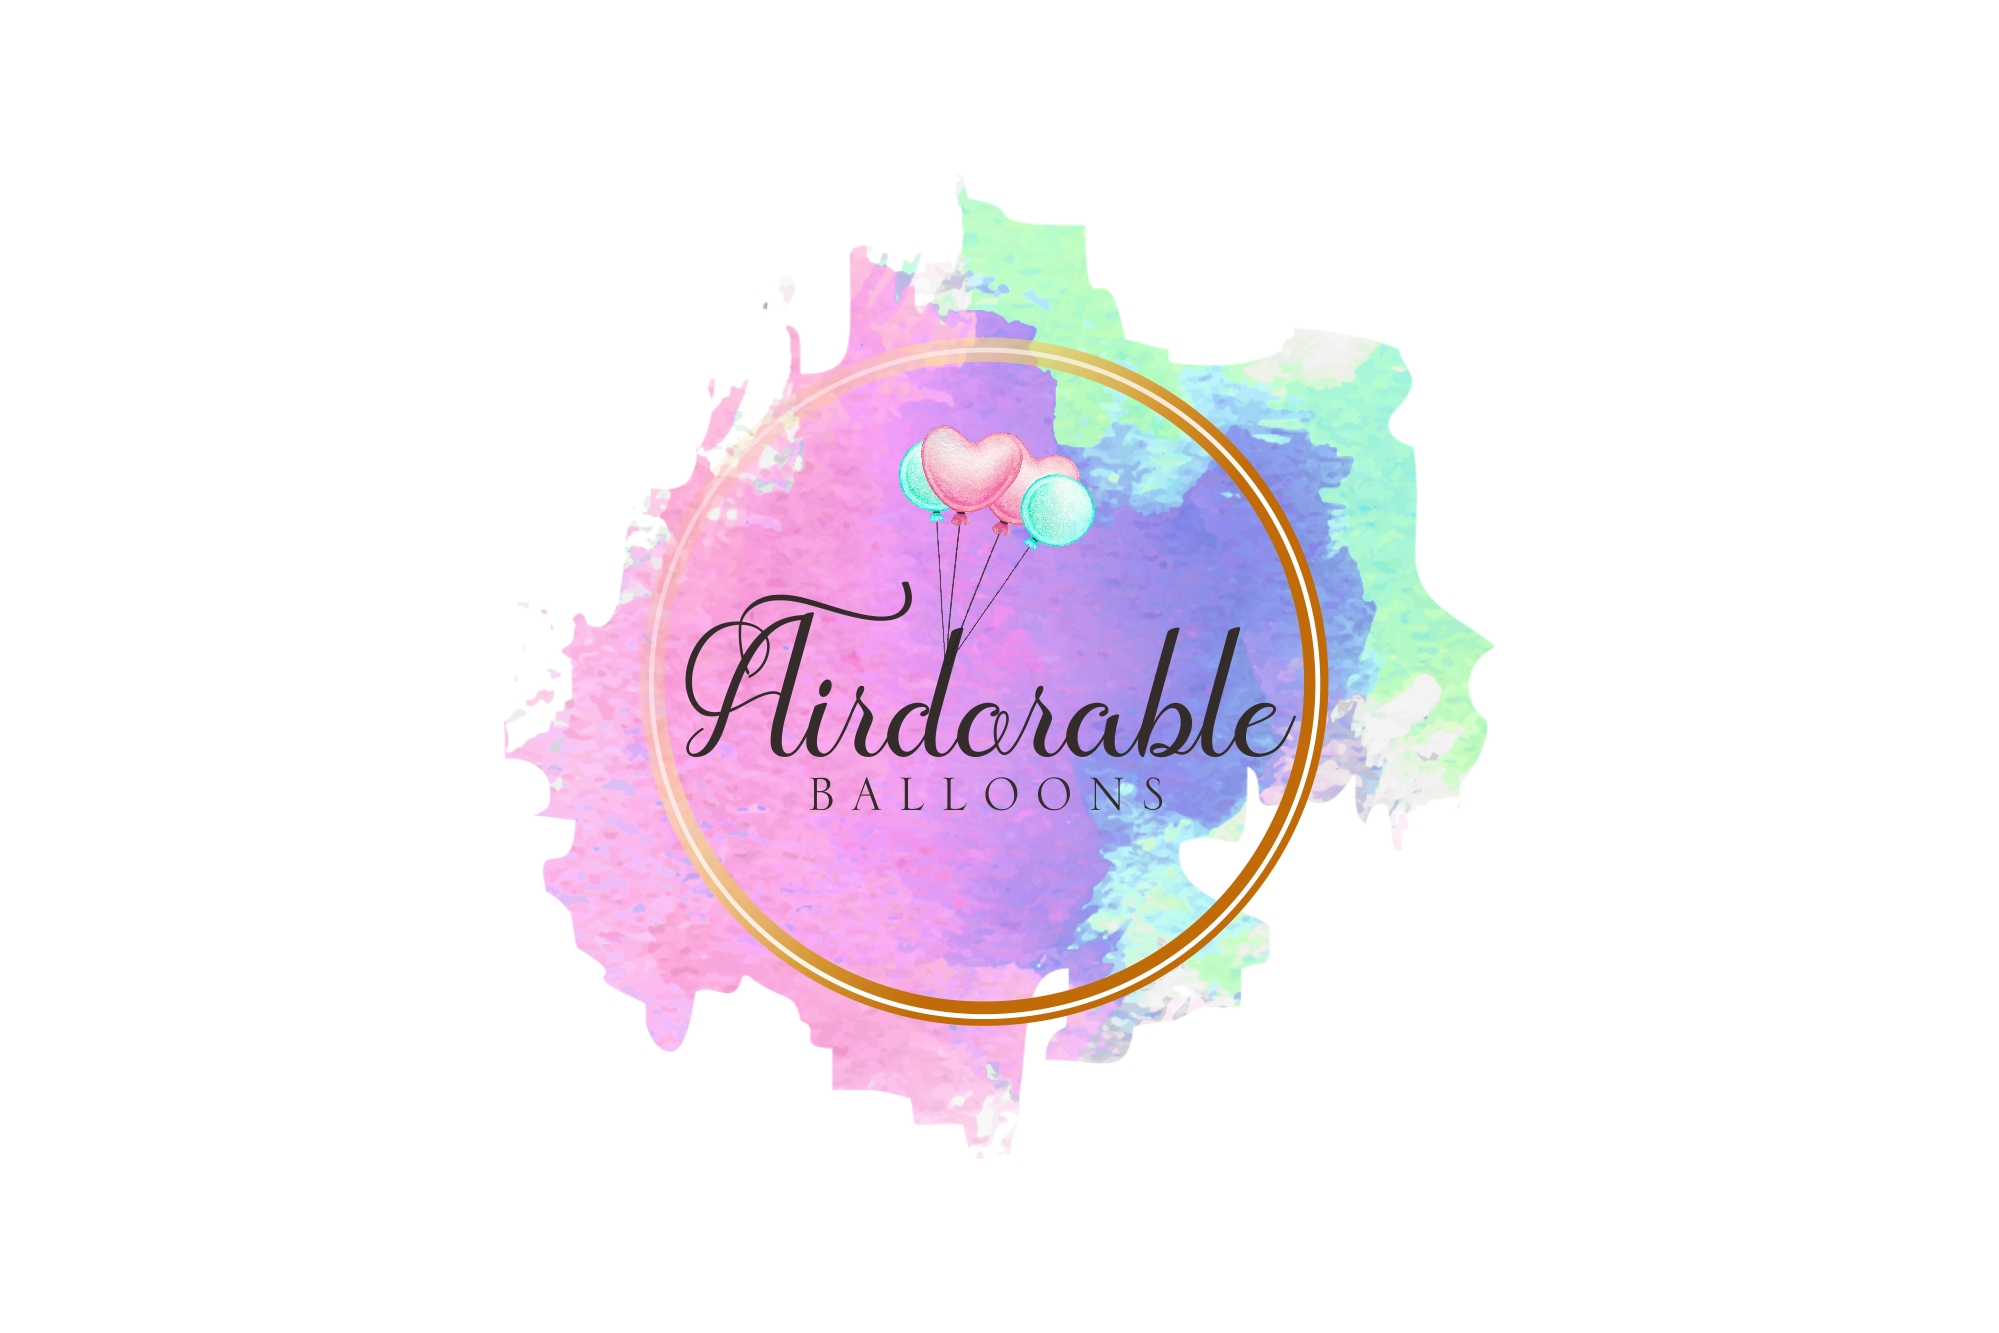 Airdorable Balloons